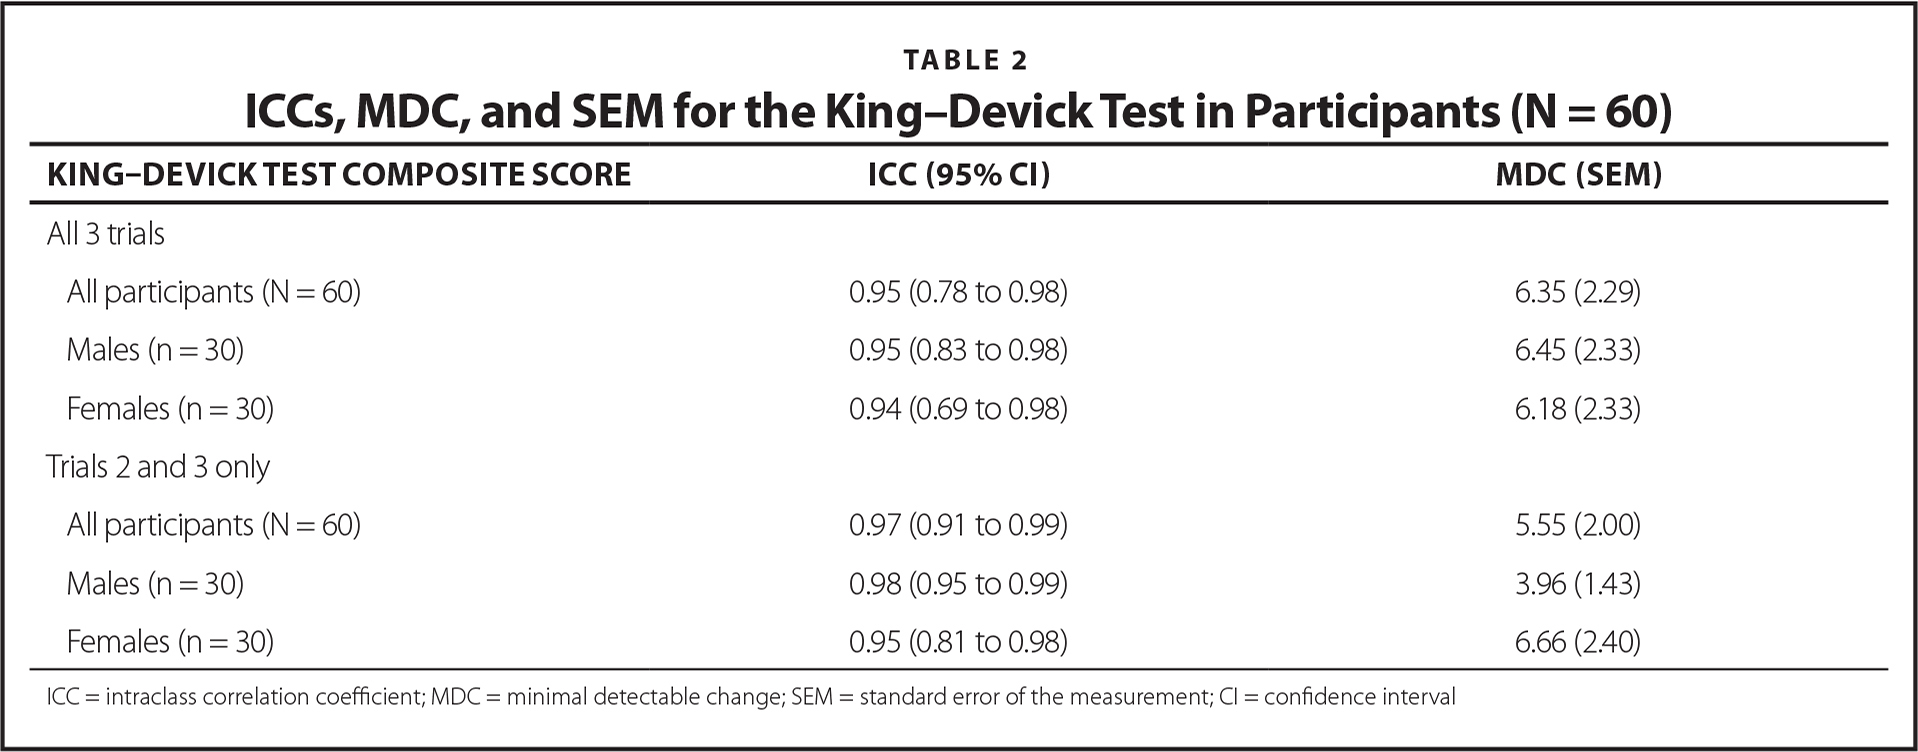 ICCs, MDC, and SEM for the King–Devick Test in Participants (N = 60)